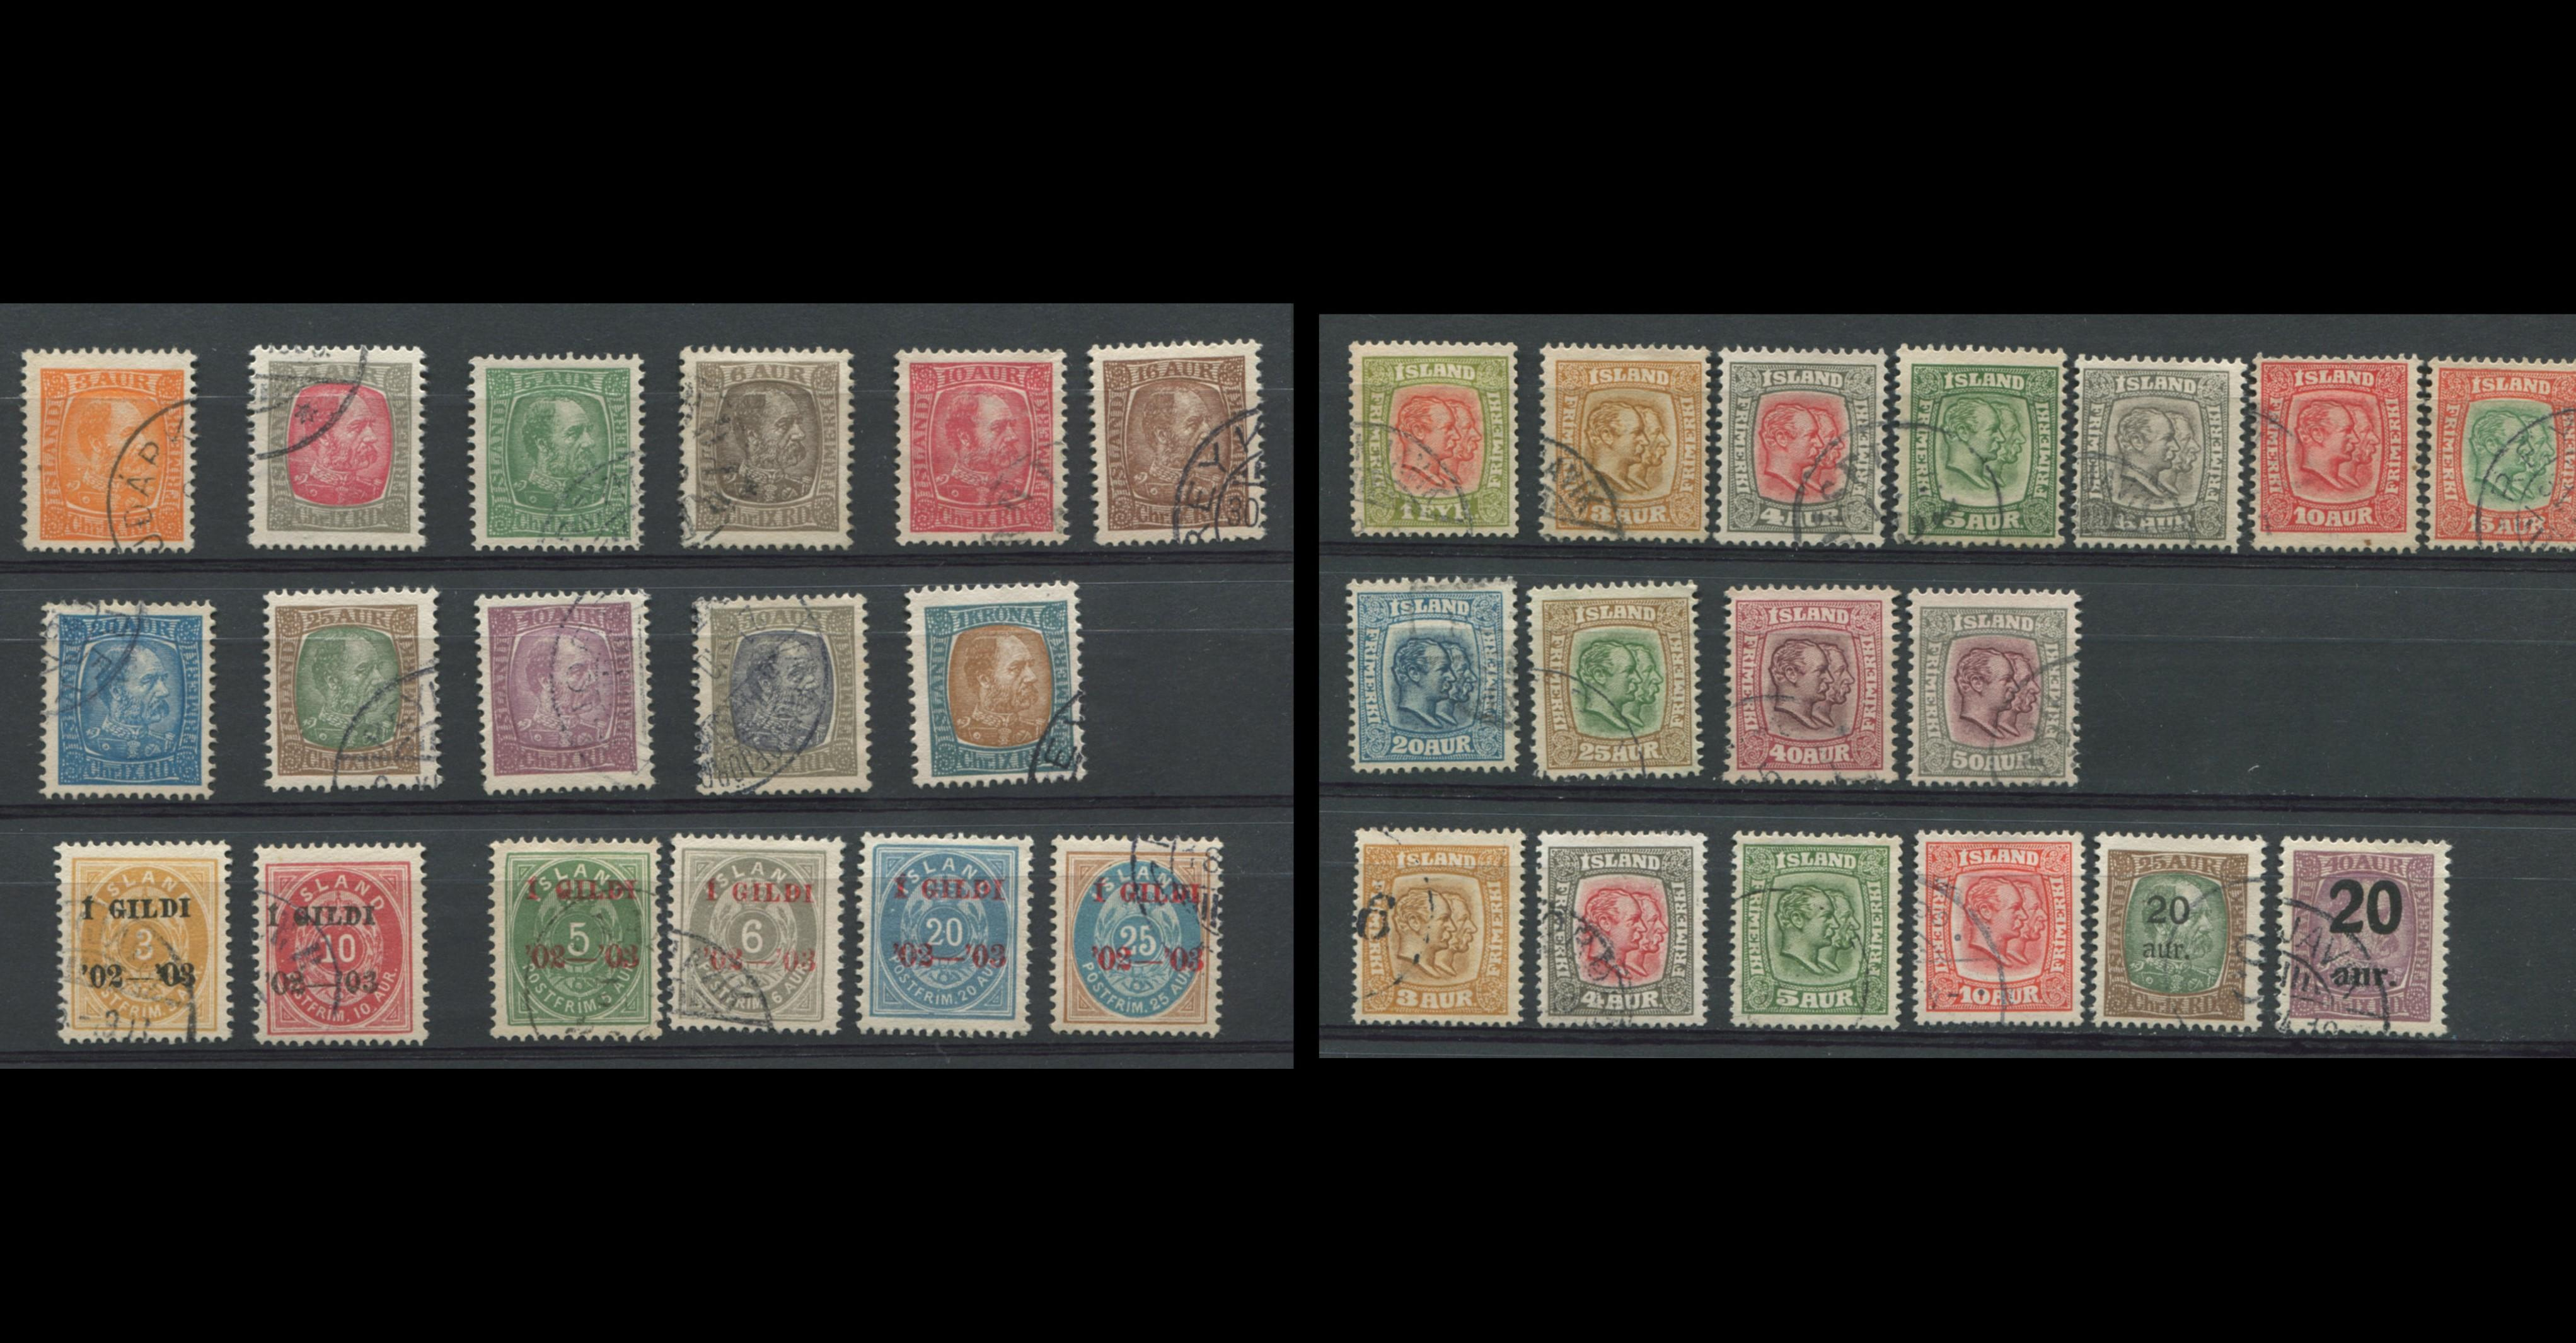 Iceland 1902-18 Stamp Sets Collection